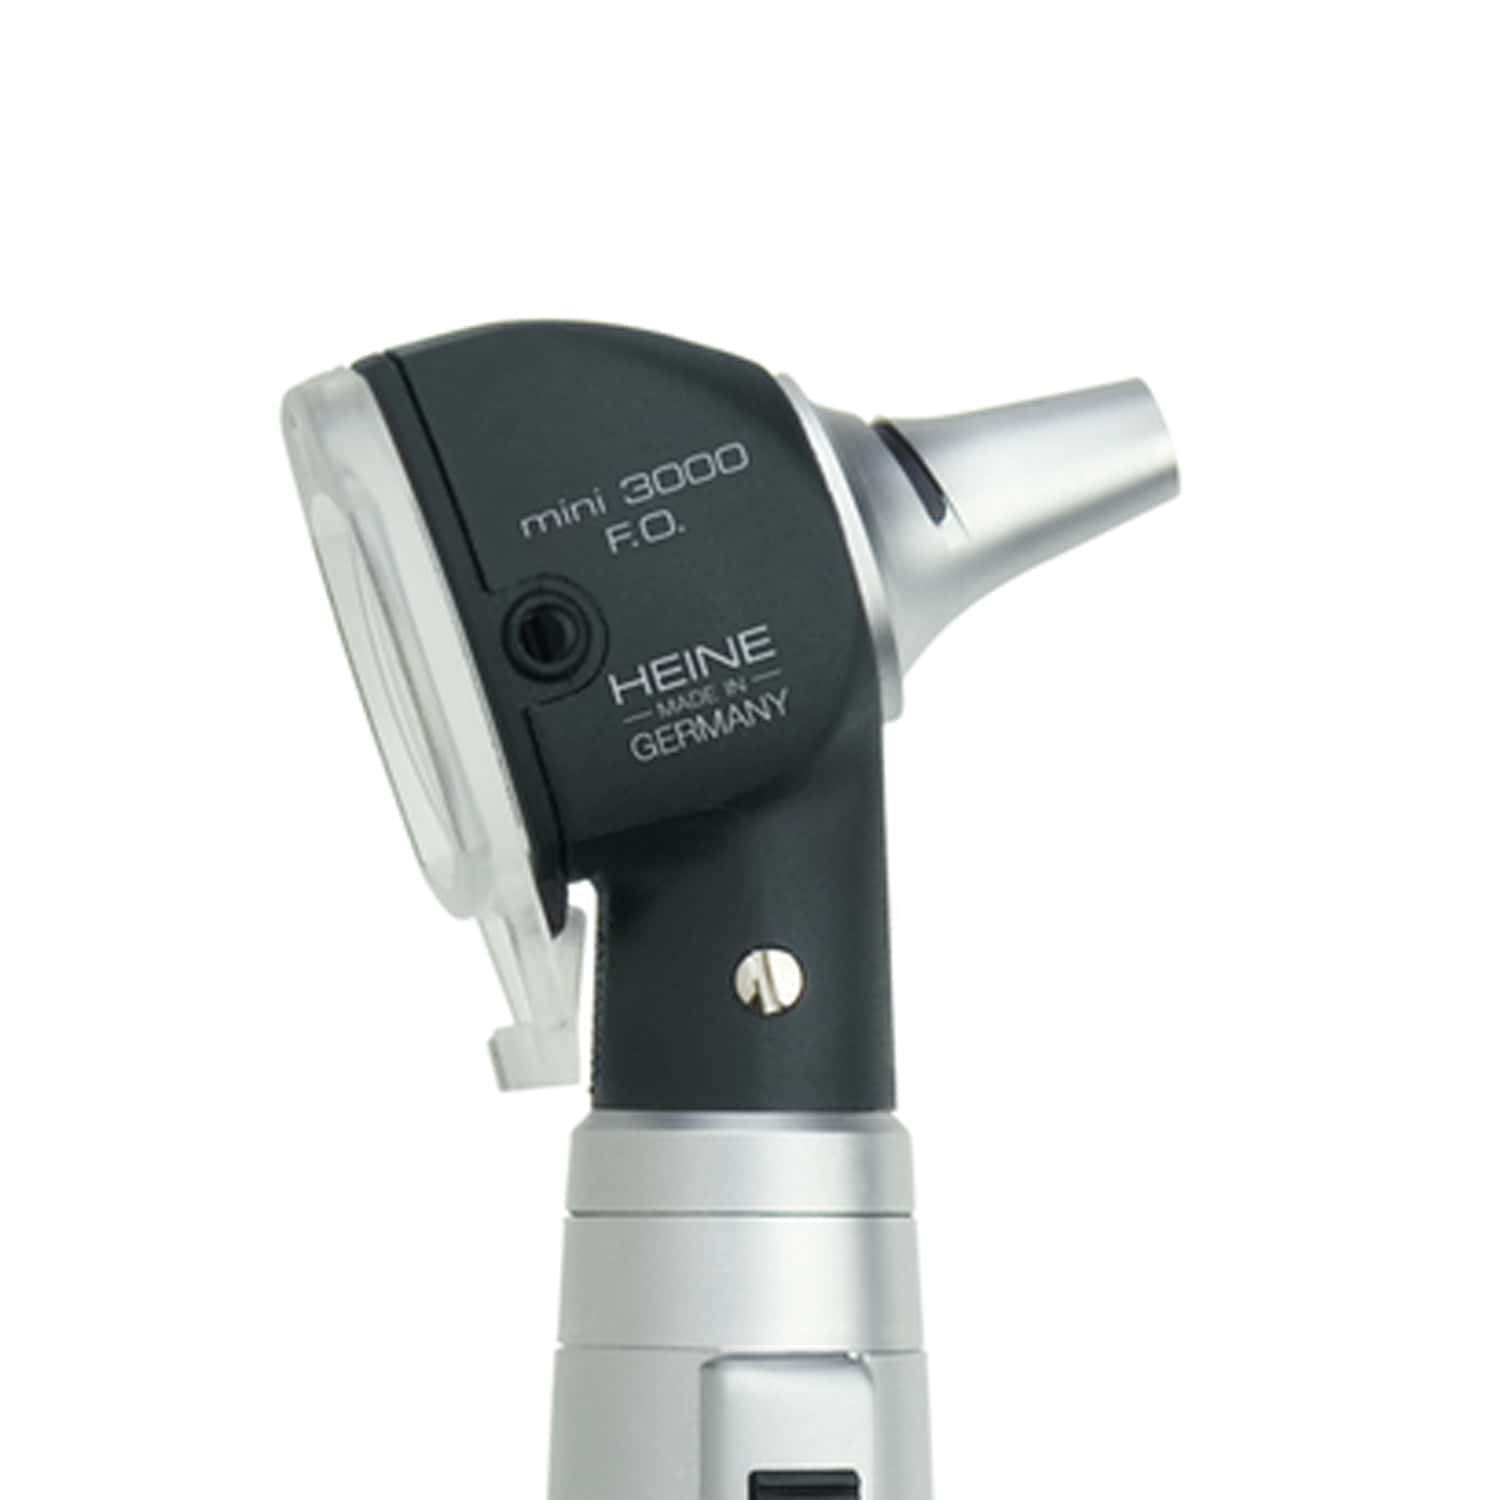 https://static.praxisdienst.com/out/pictures/generated/product/2/1500_1500_100/128497bl_csm_d-001.70.110-heine-otoscope-mini3000_detail.jpg